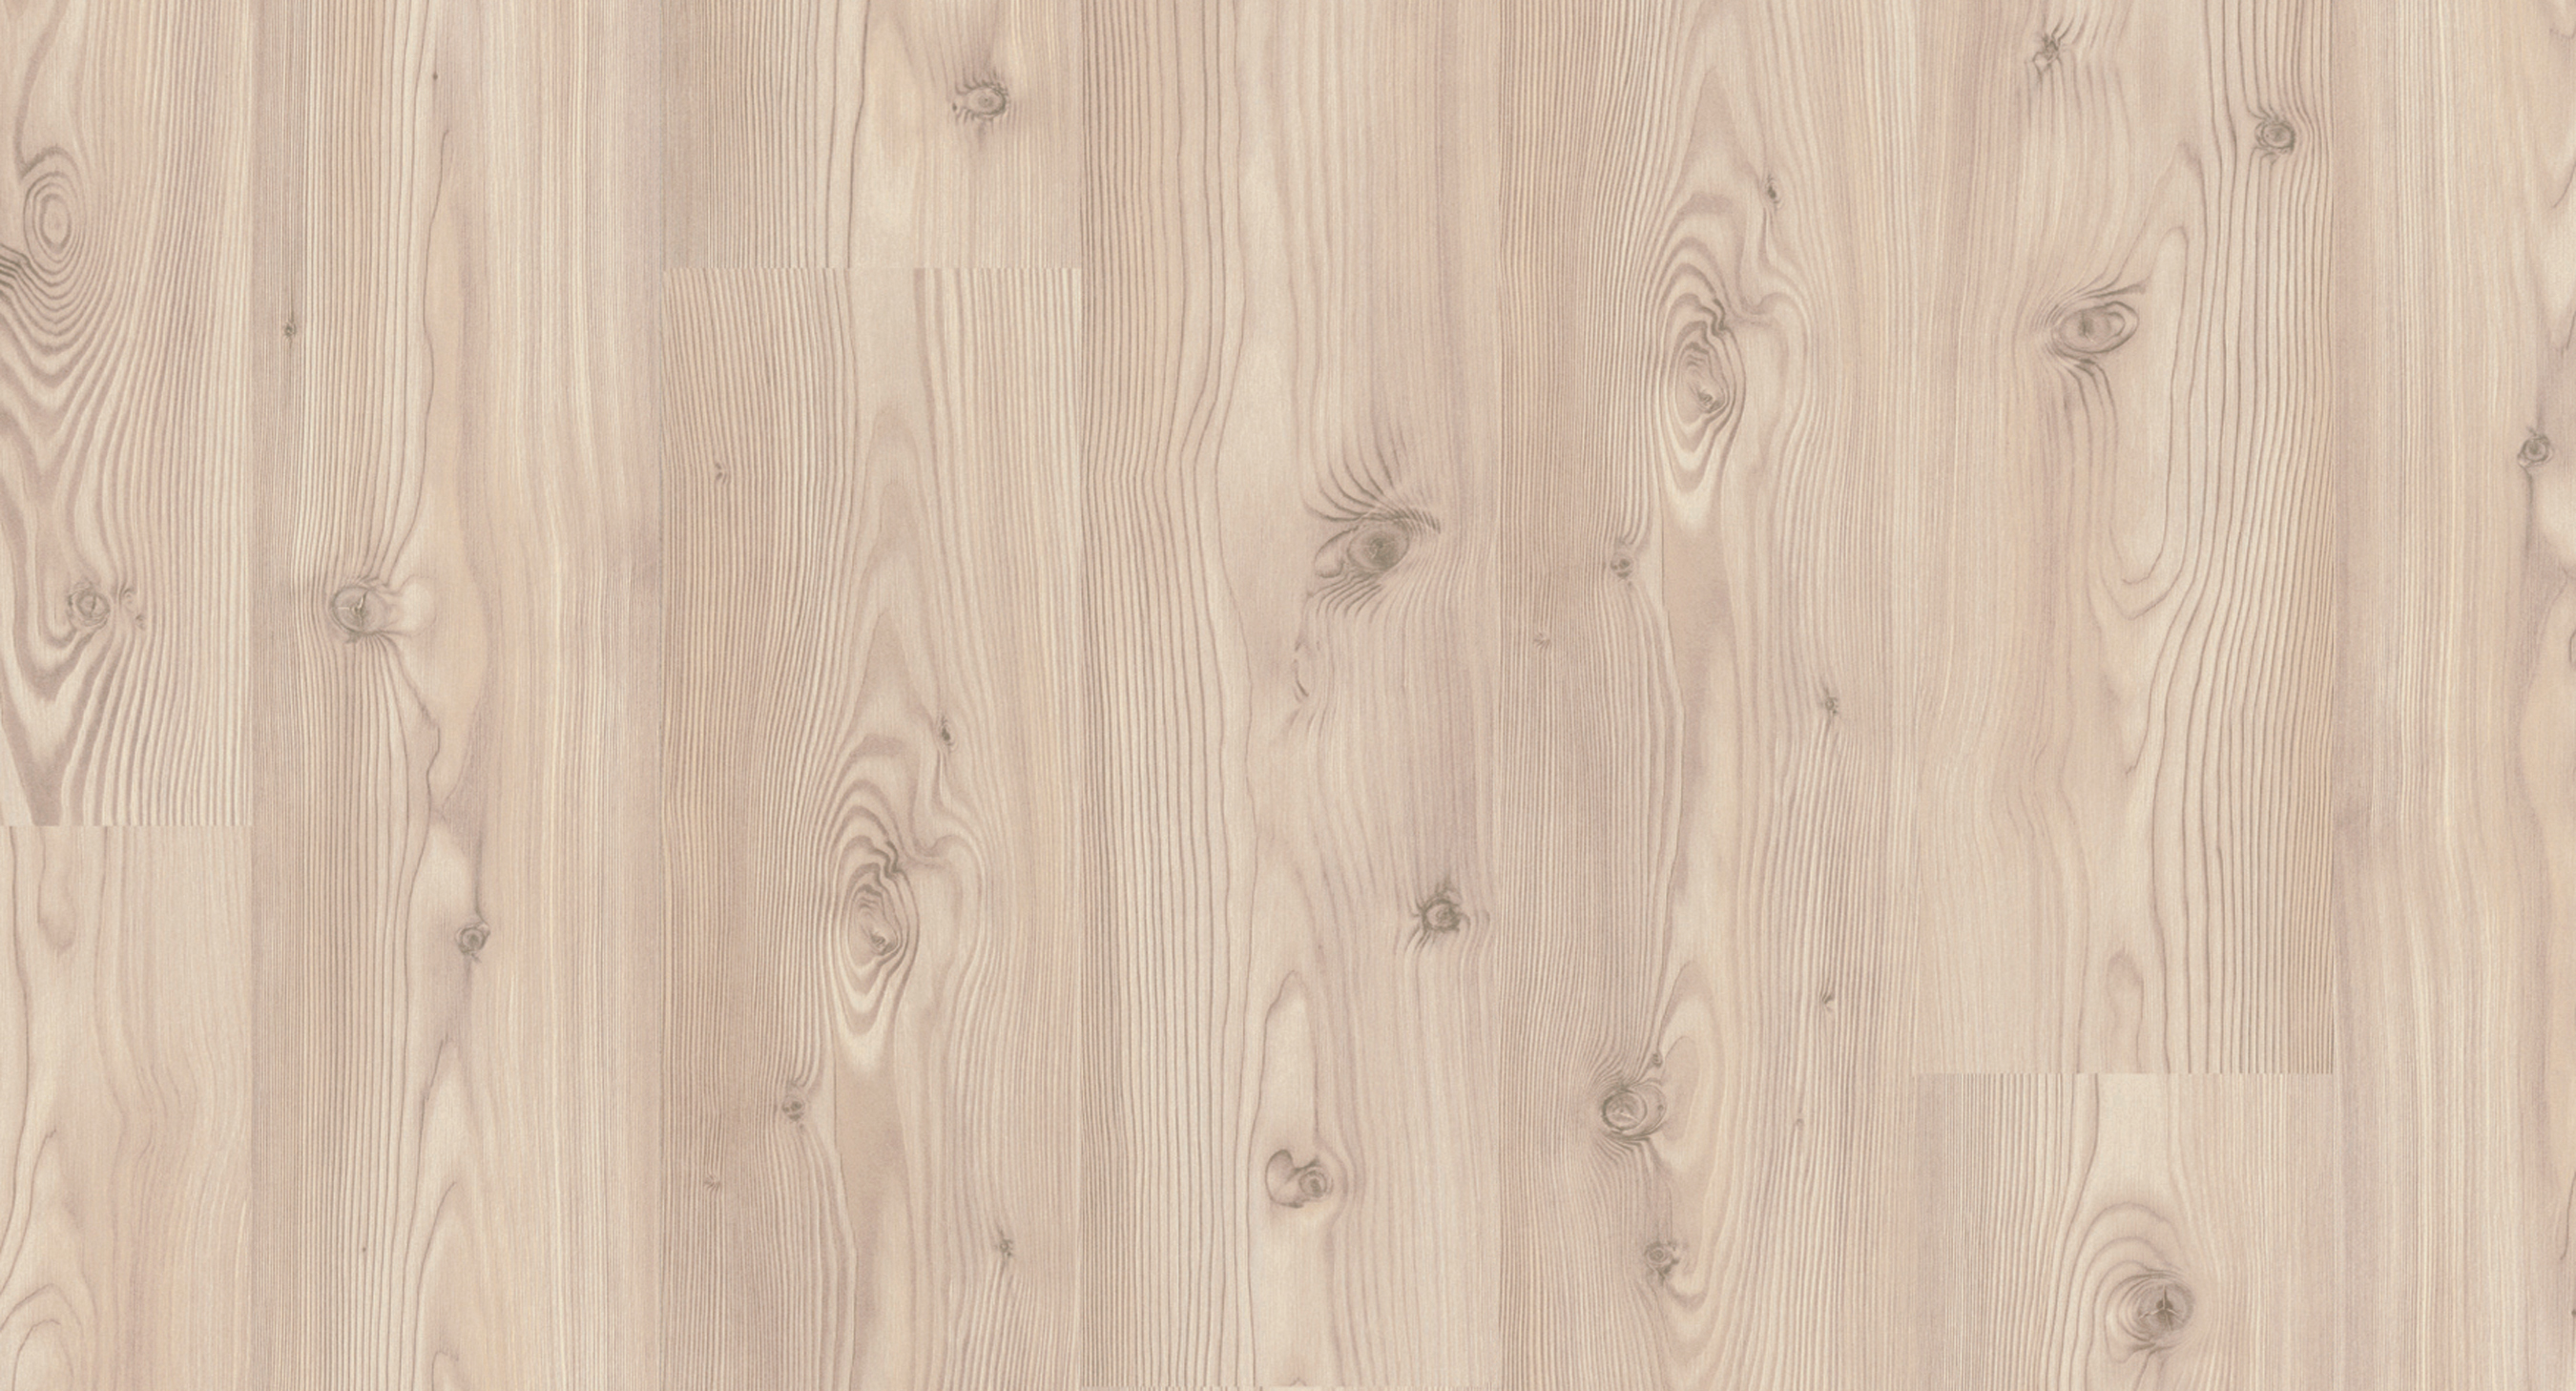 Baltic Pine Wood